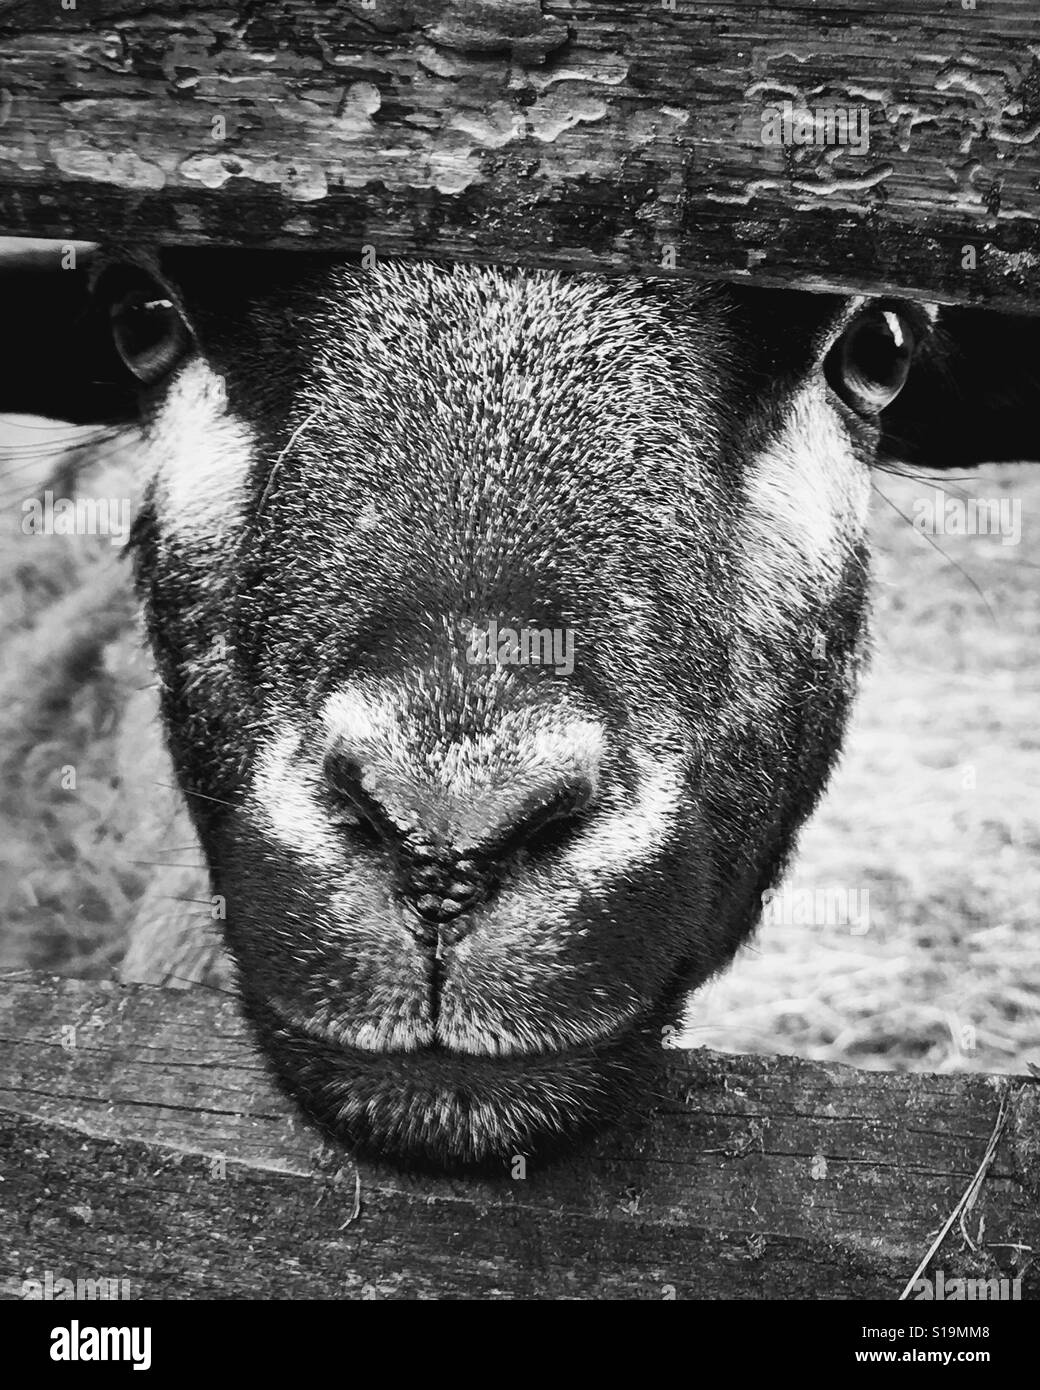 Goat face looking straight at the camera with head between a fence in black and white Stock Photo